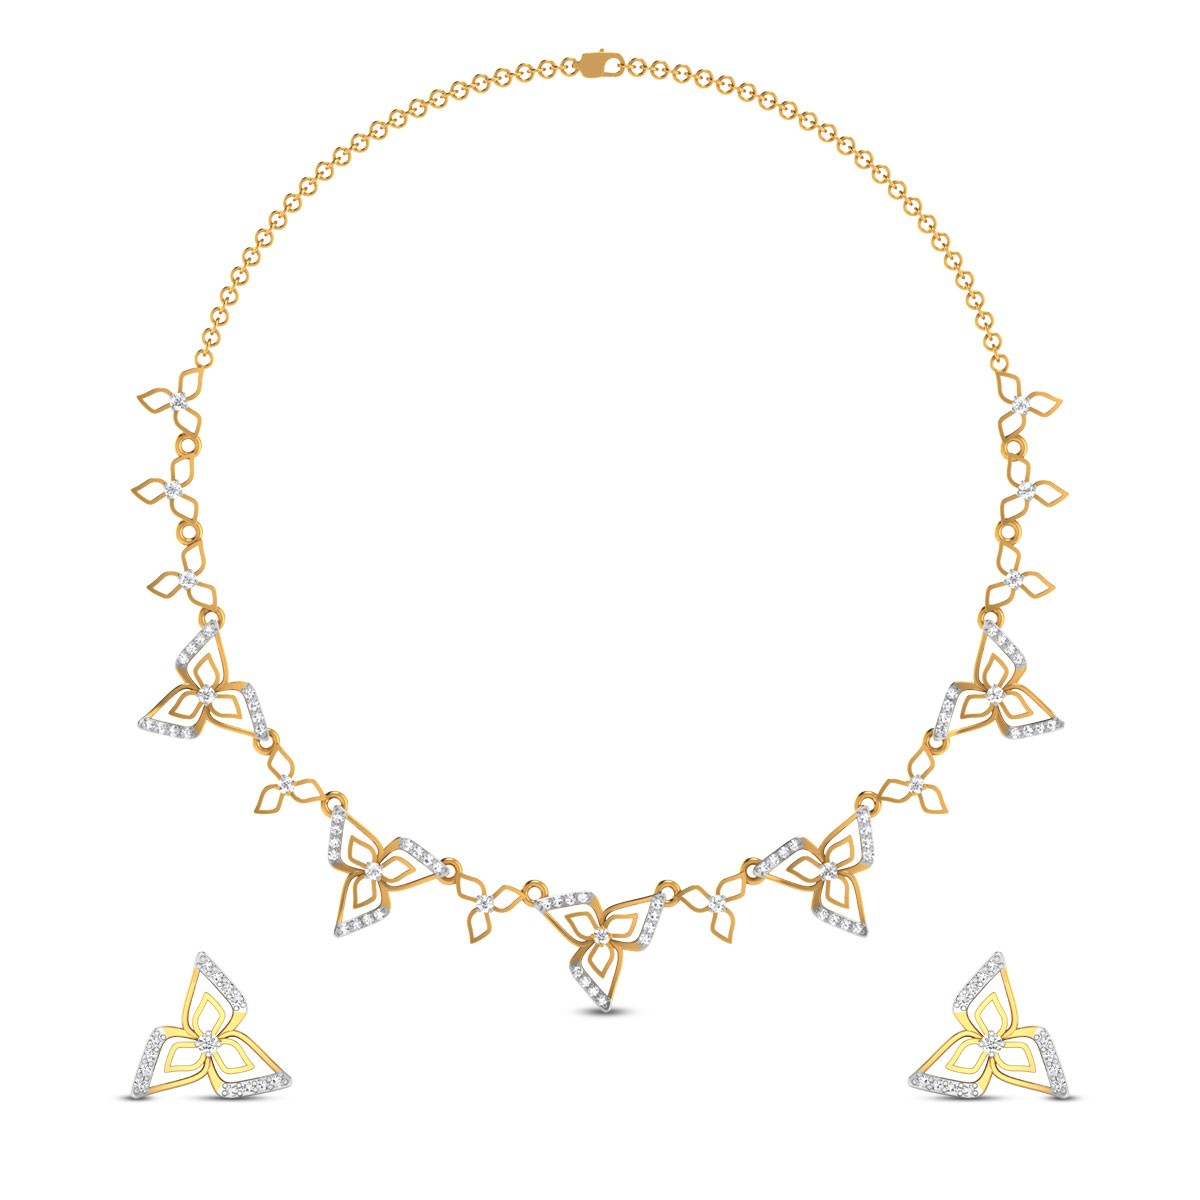 Aukeilia Diamond Necklace Set